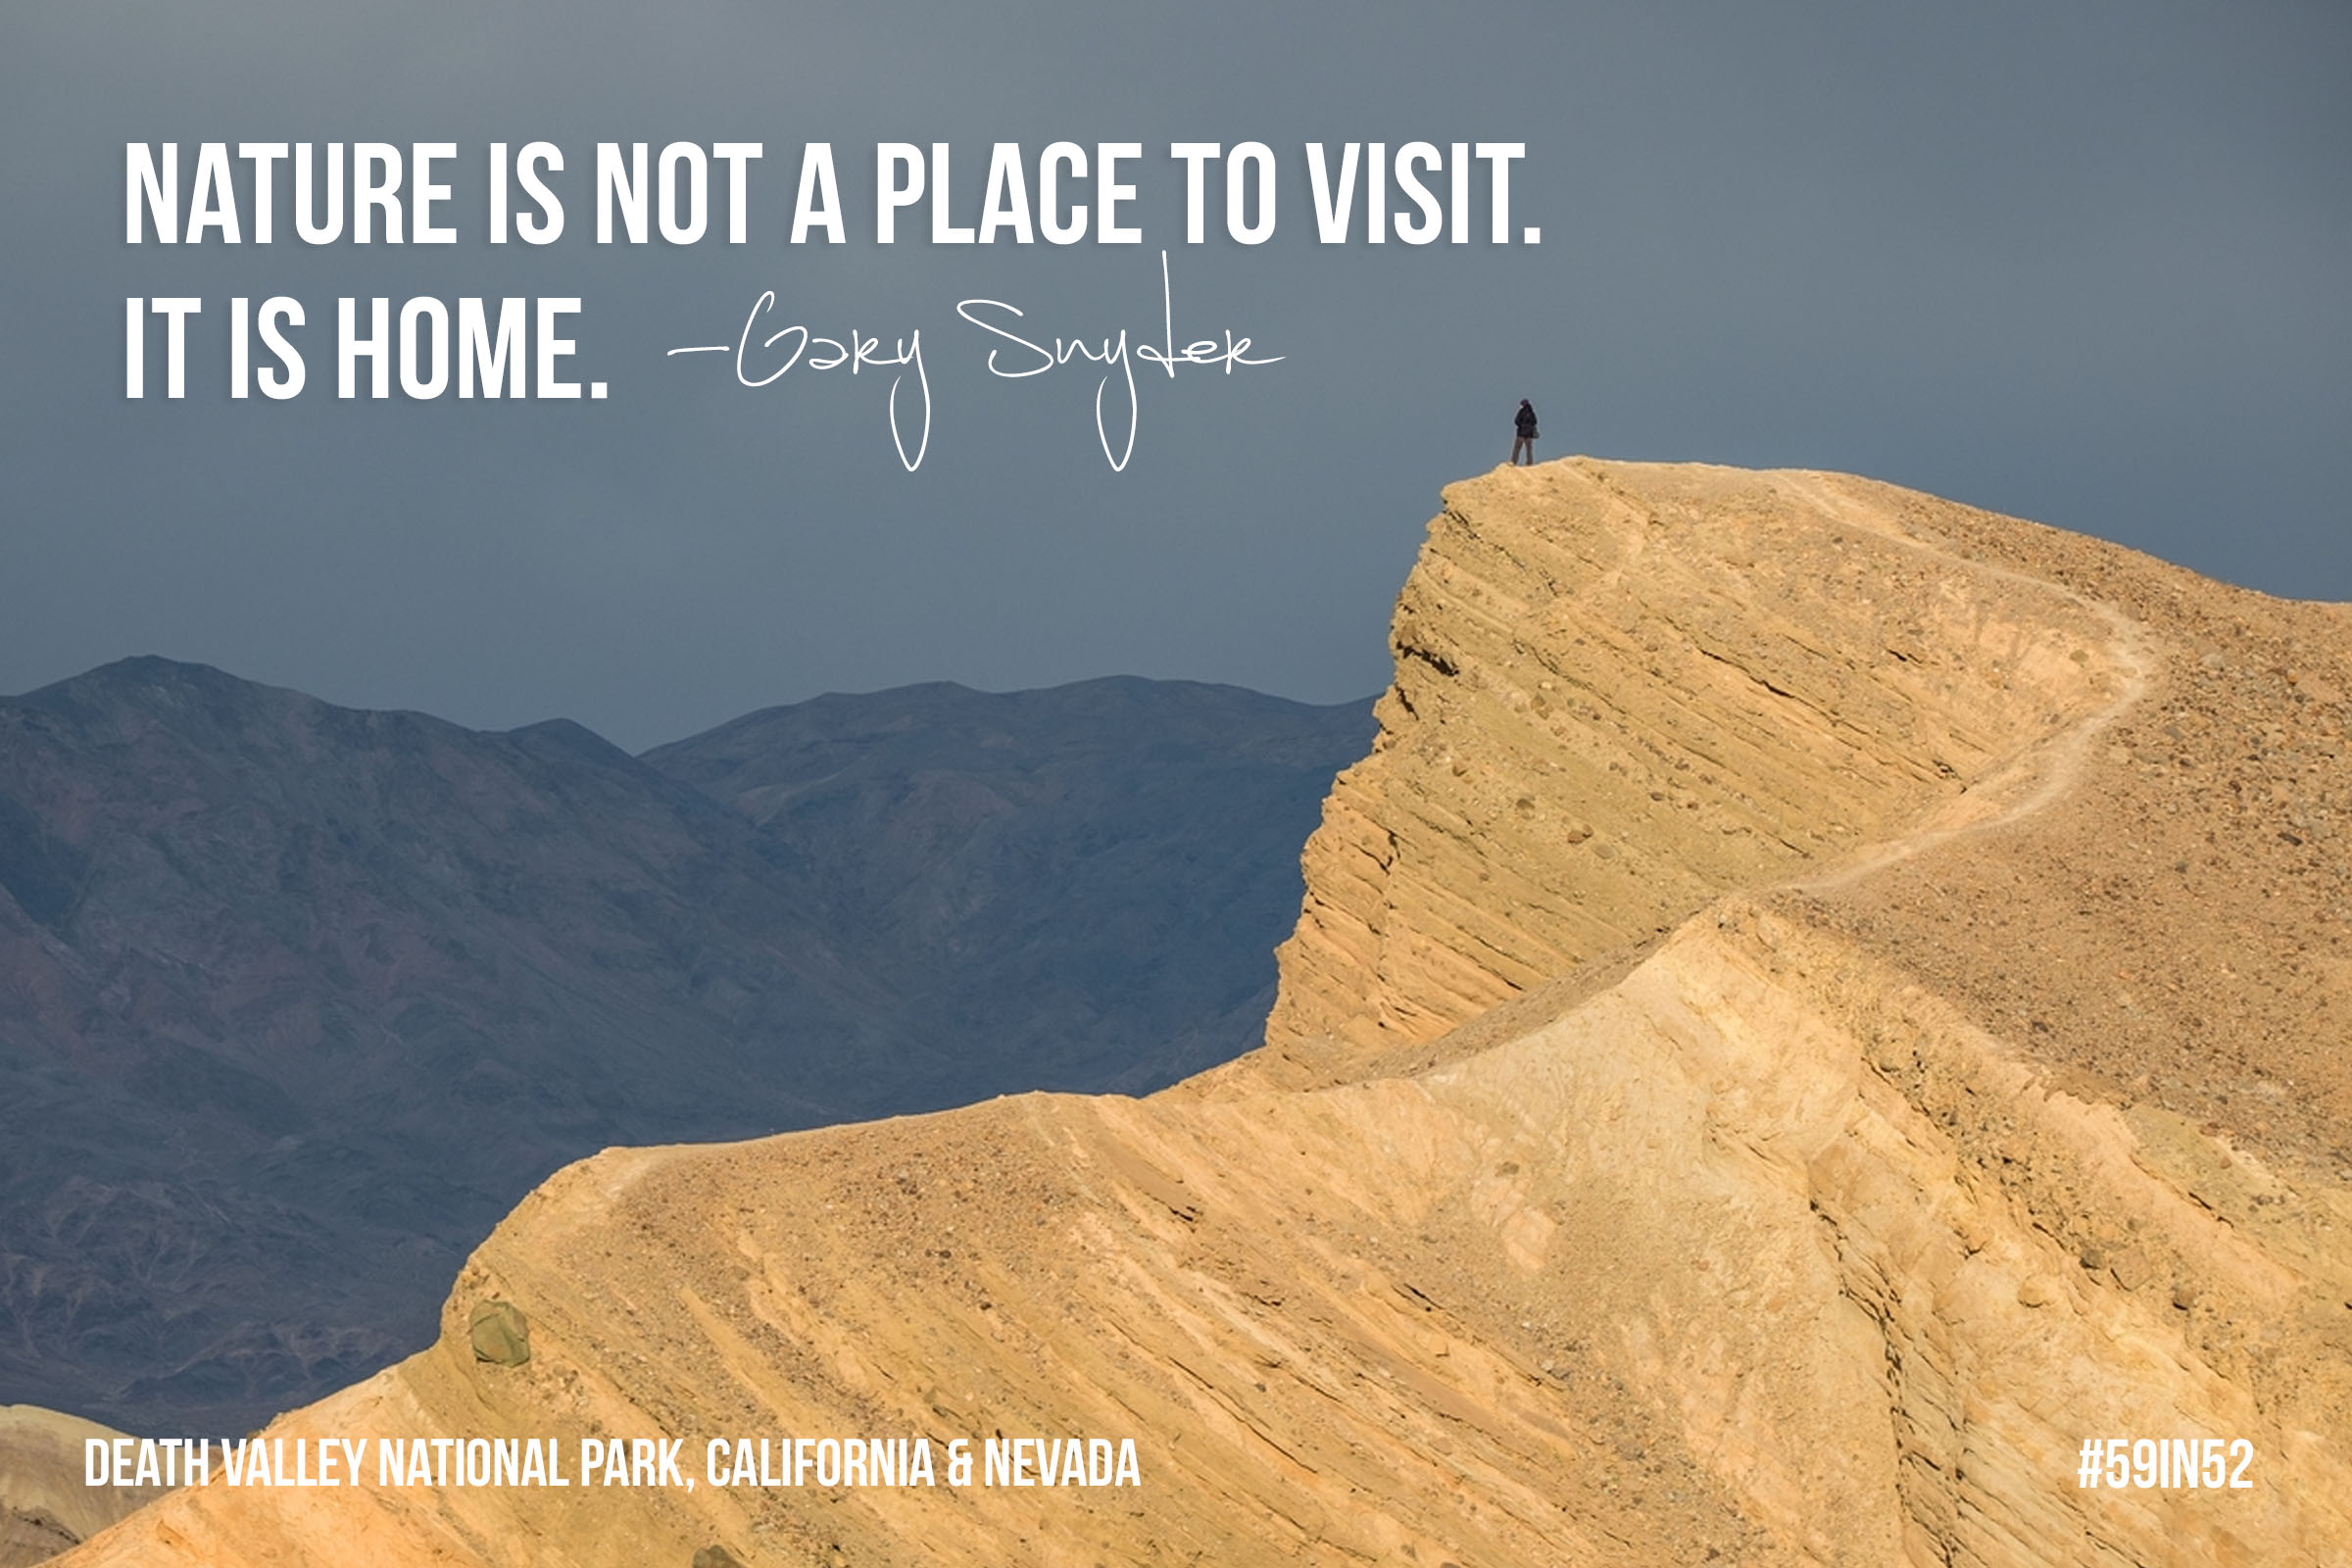 """Nature is not a place to visit. It is home."" - Gary Snyder"